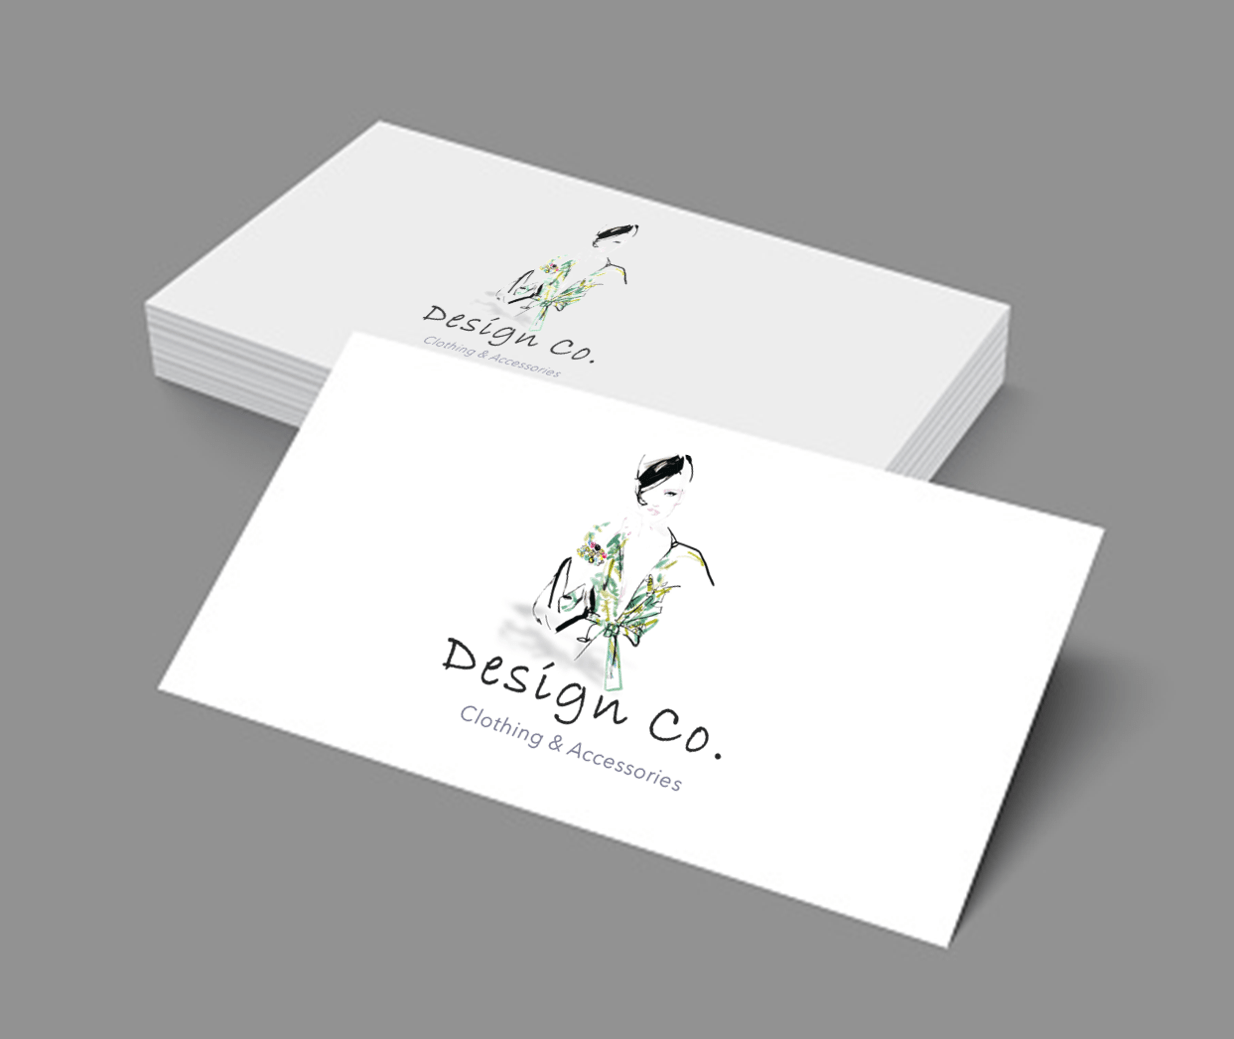 clothing brand business cards